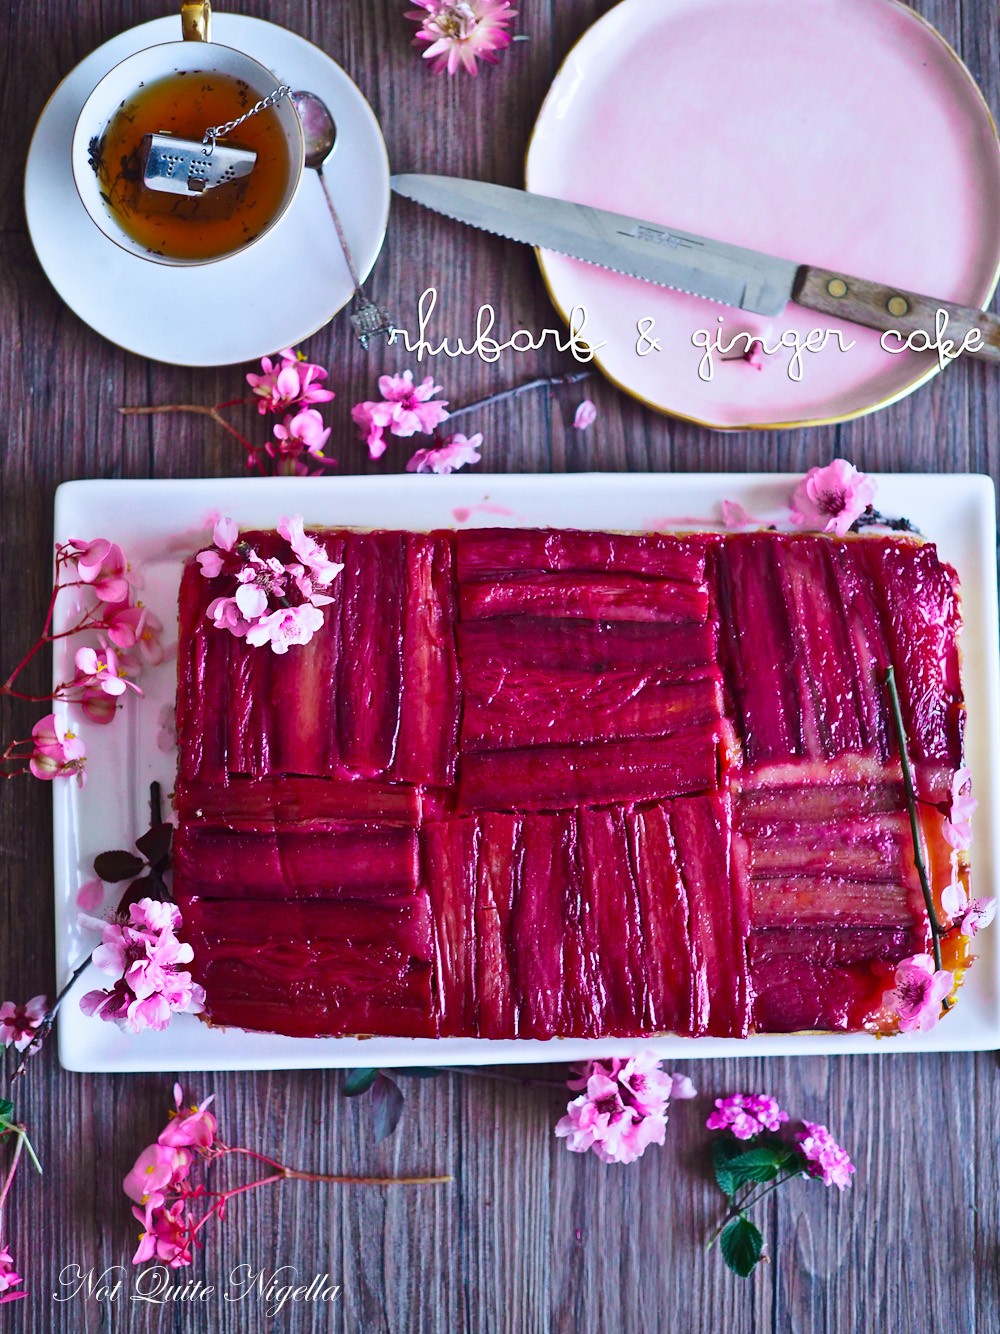 Rhubarb Ginger Cake Recipe